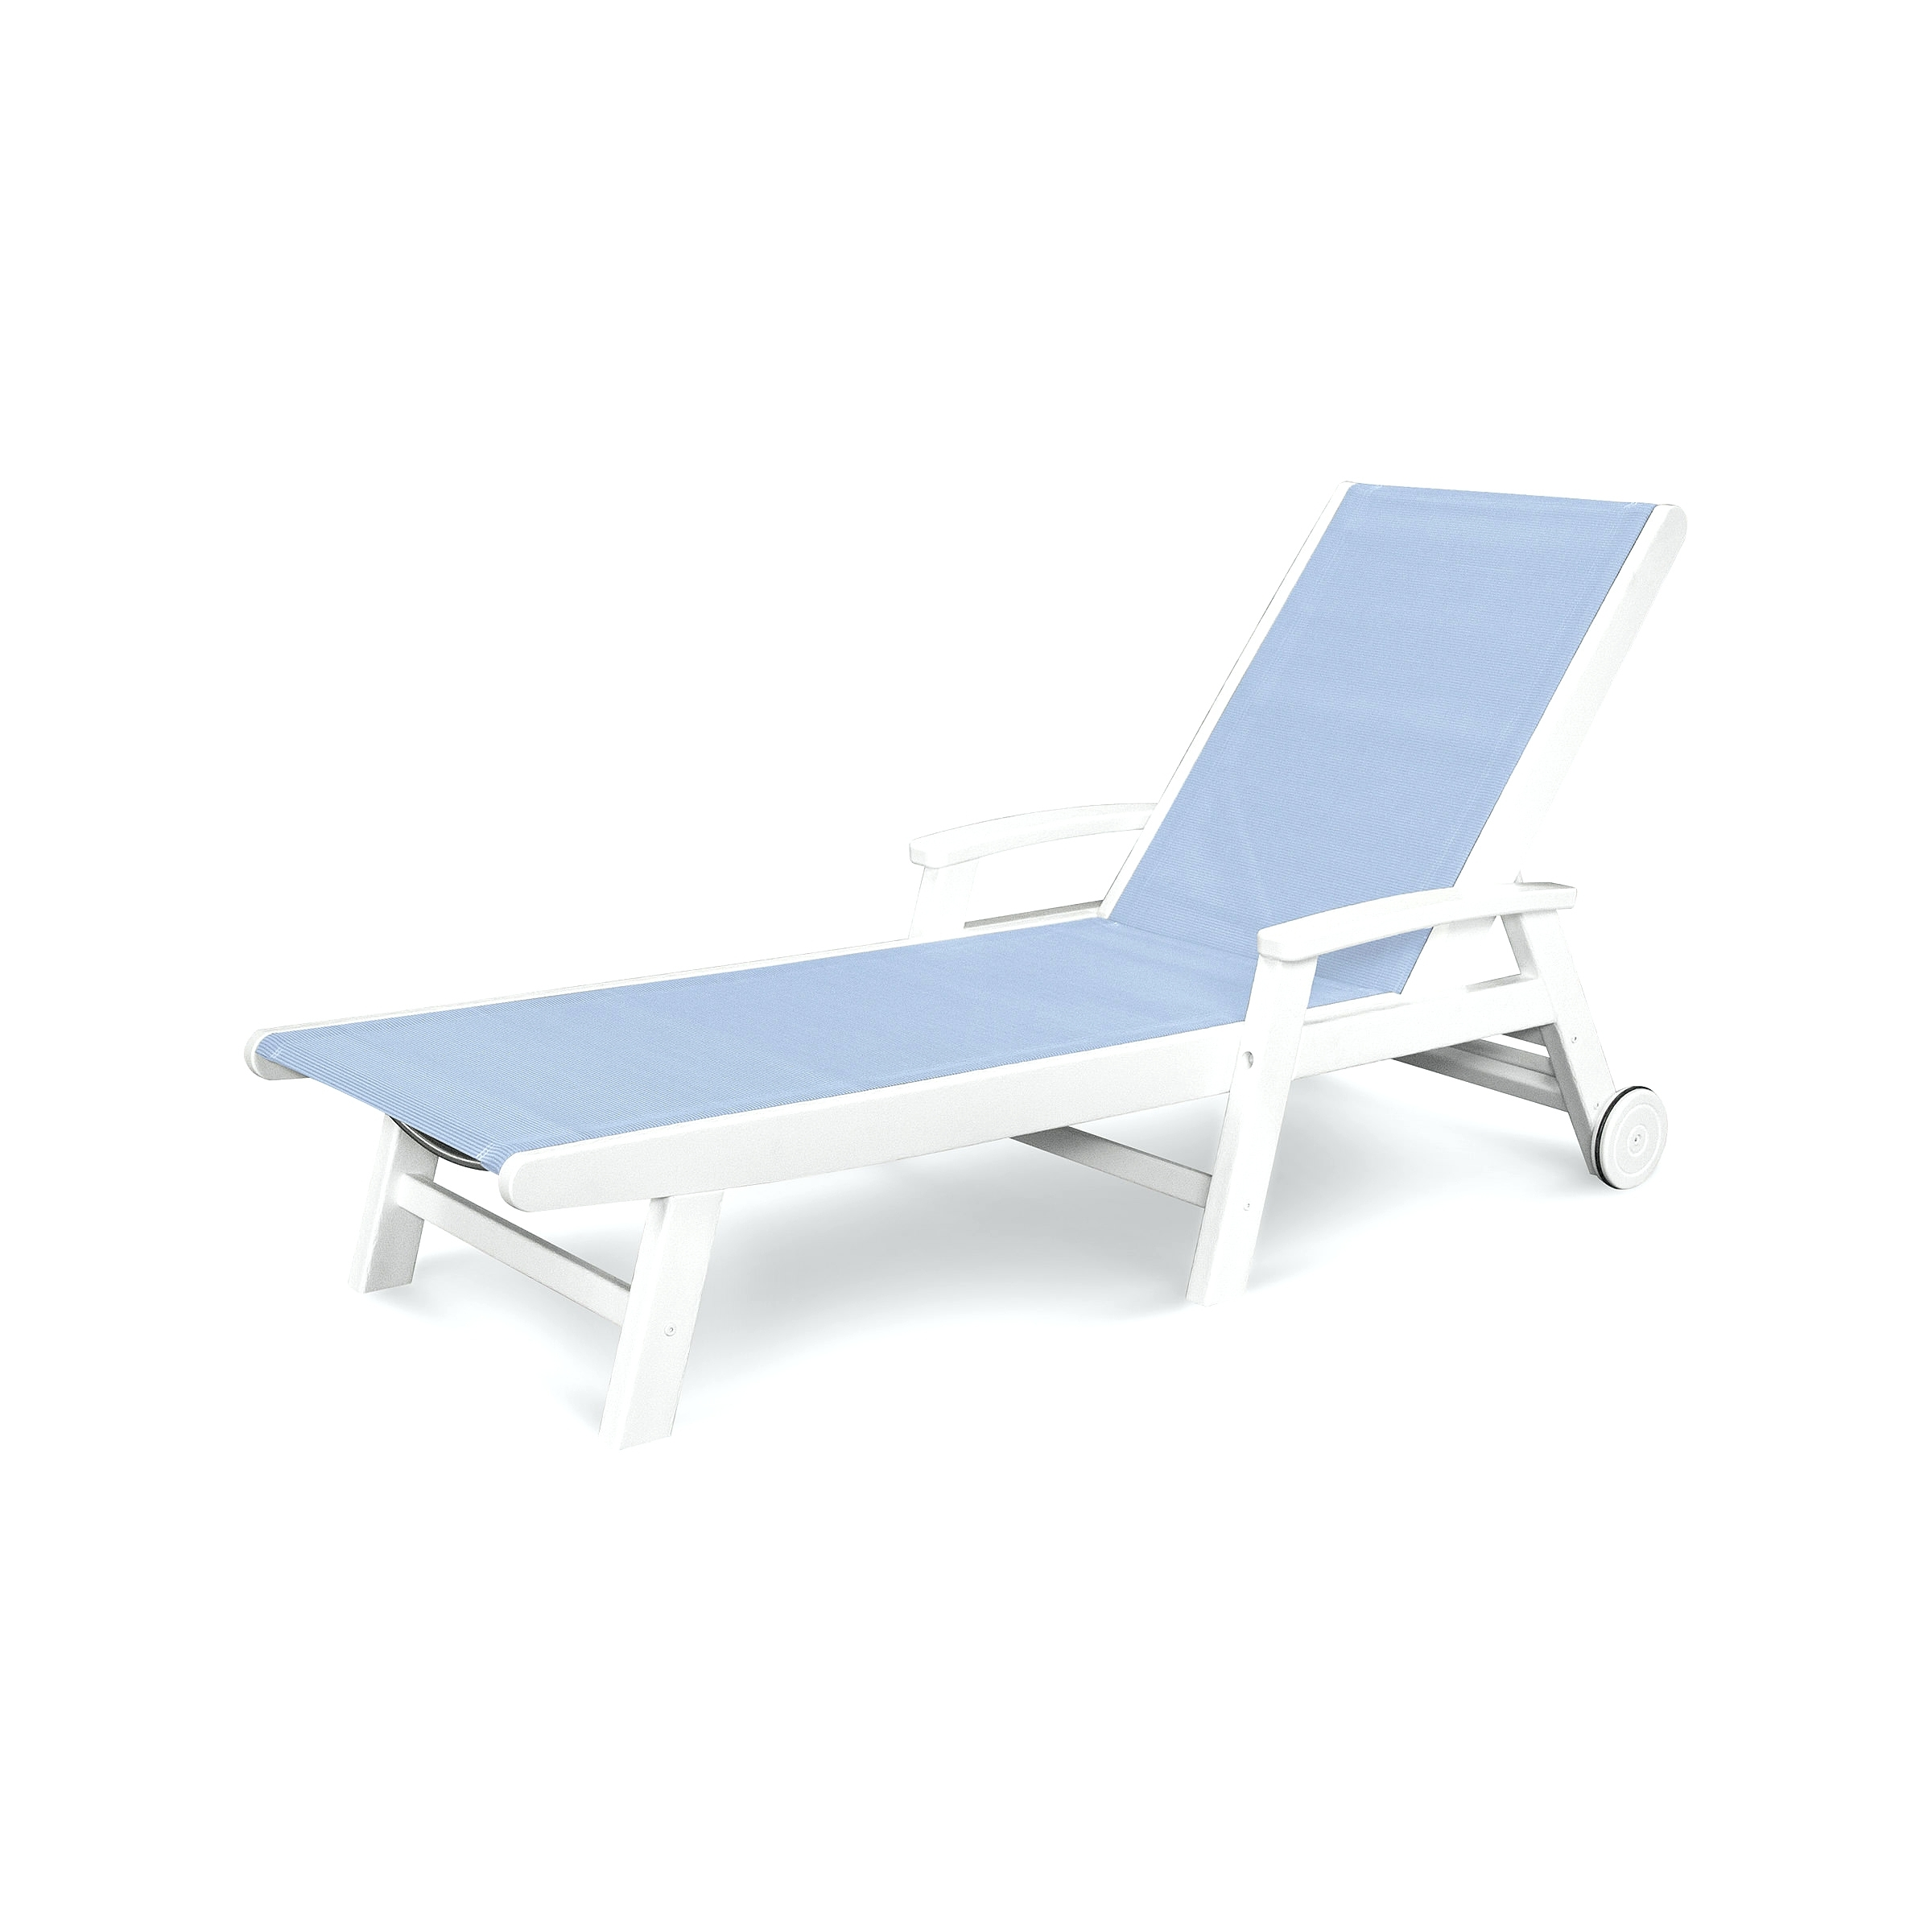 Most Recently Released Bahia Chaise Lounge Chair And Cushions • Lounge Chairs Ideas With Regard To Grosfillex Chaise Lounge Chairs (View 8 of 15)